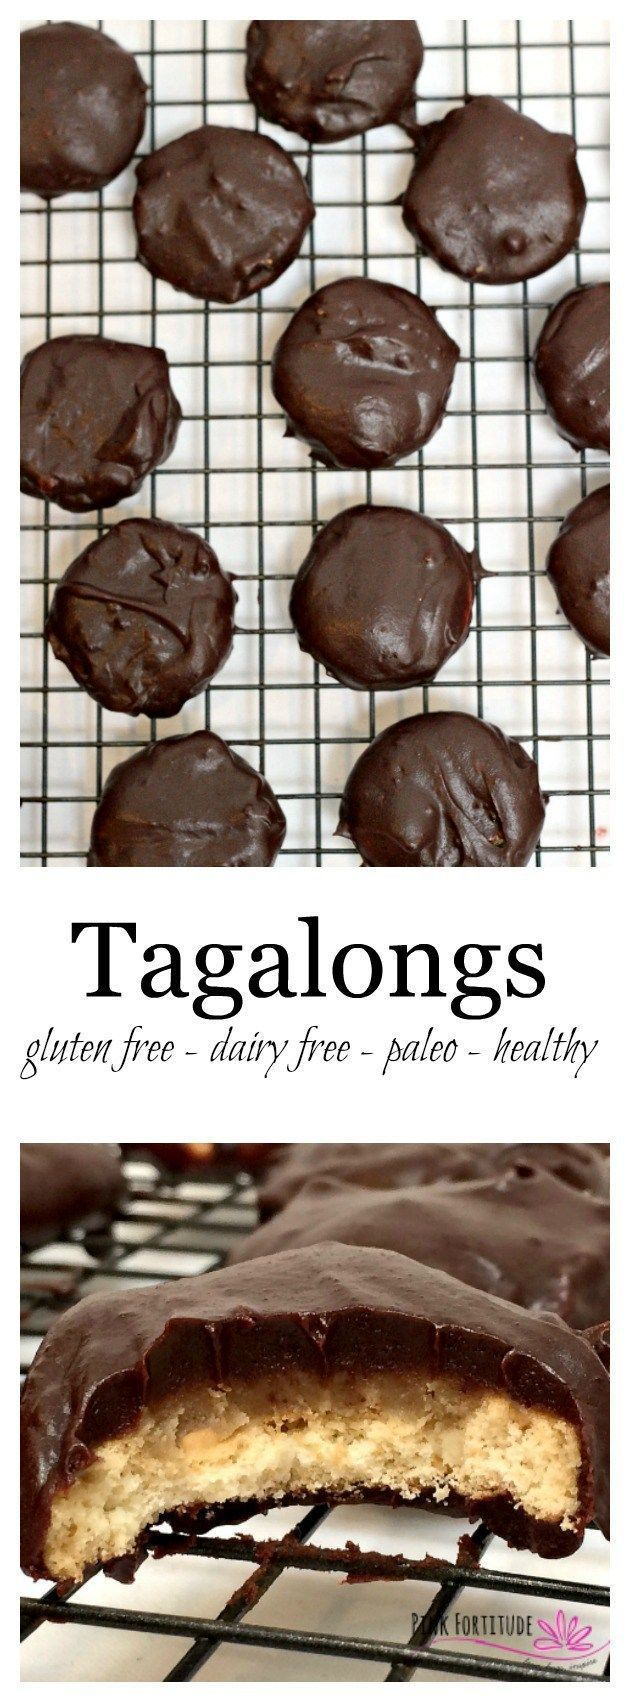 Back in the day, I counted the moments until Girl Scout cookies arrived. Thin Mints were my jam... but Tagalongs were my kryptonite. If you enjoy the peanut buttery and chocolate goodness as much as I do, you will love this grown up version which is glute